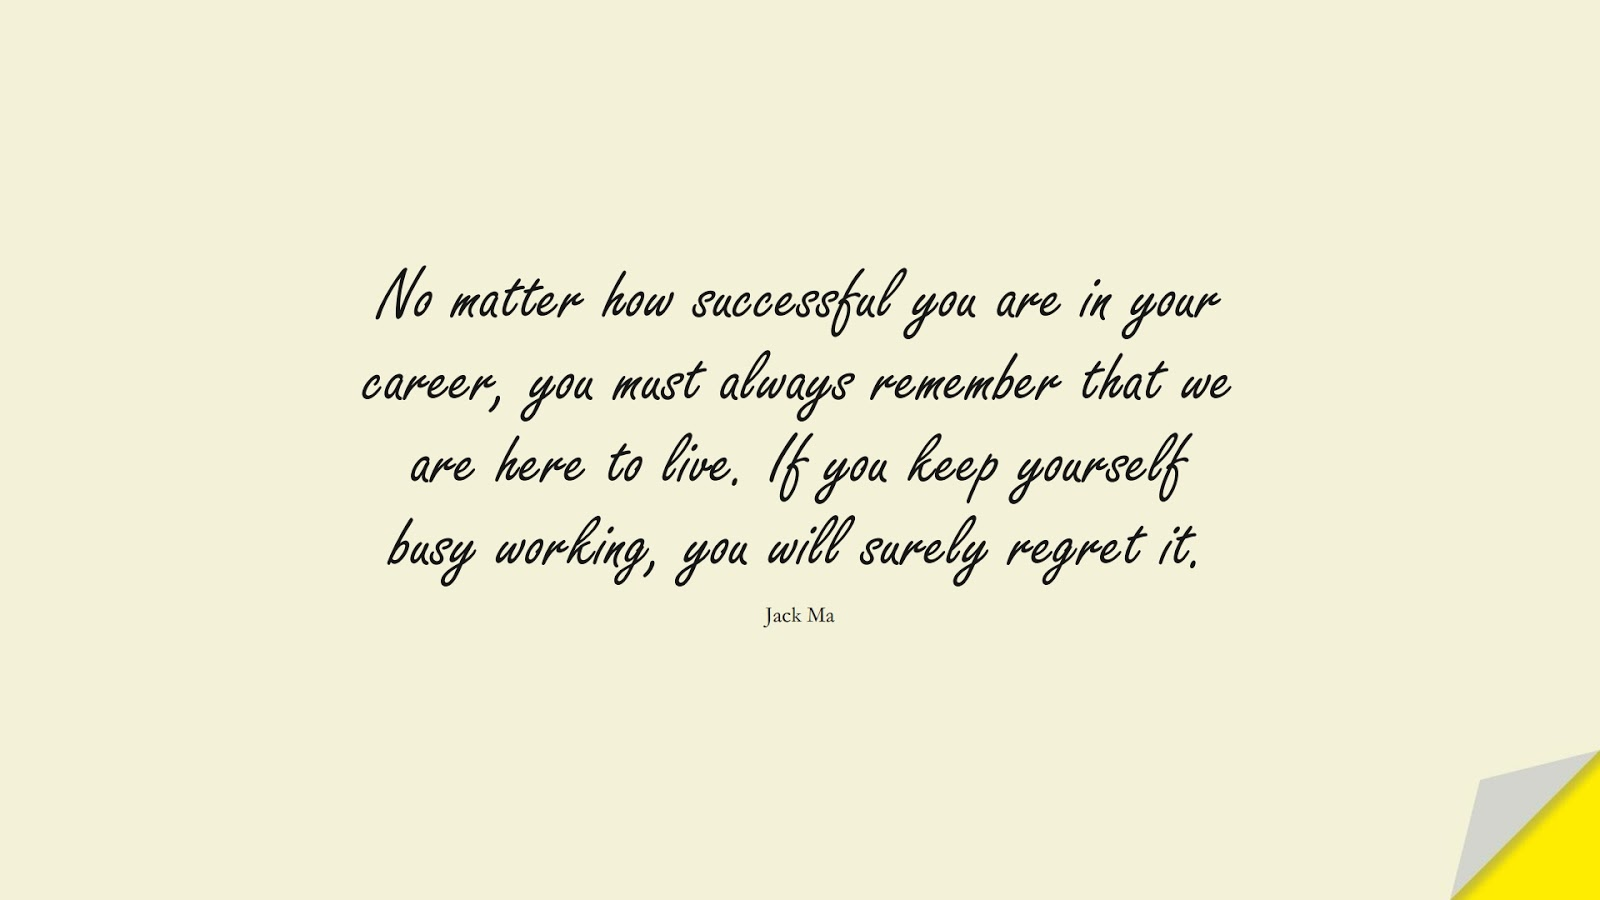 No matter how successful you are in your career, you must always remember that we are here to live. If you keep yourself busy working, you will surely regret it. (Jack Ma);  #SuccessQuotes